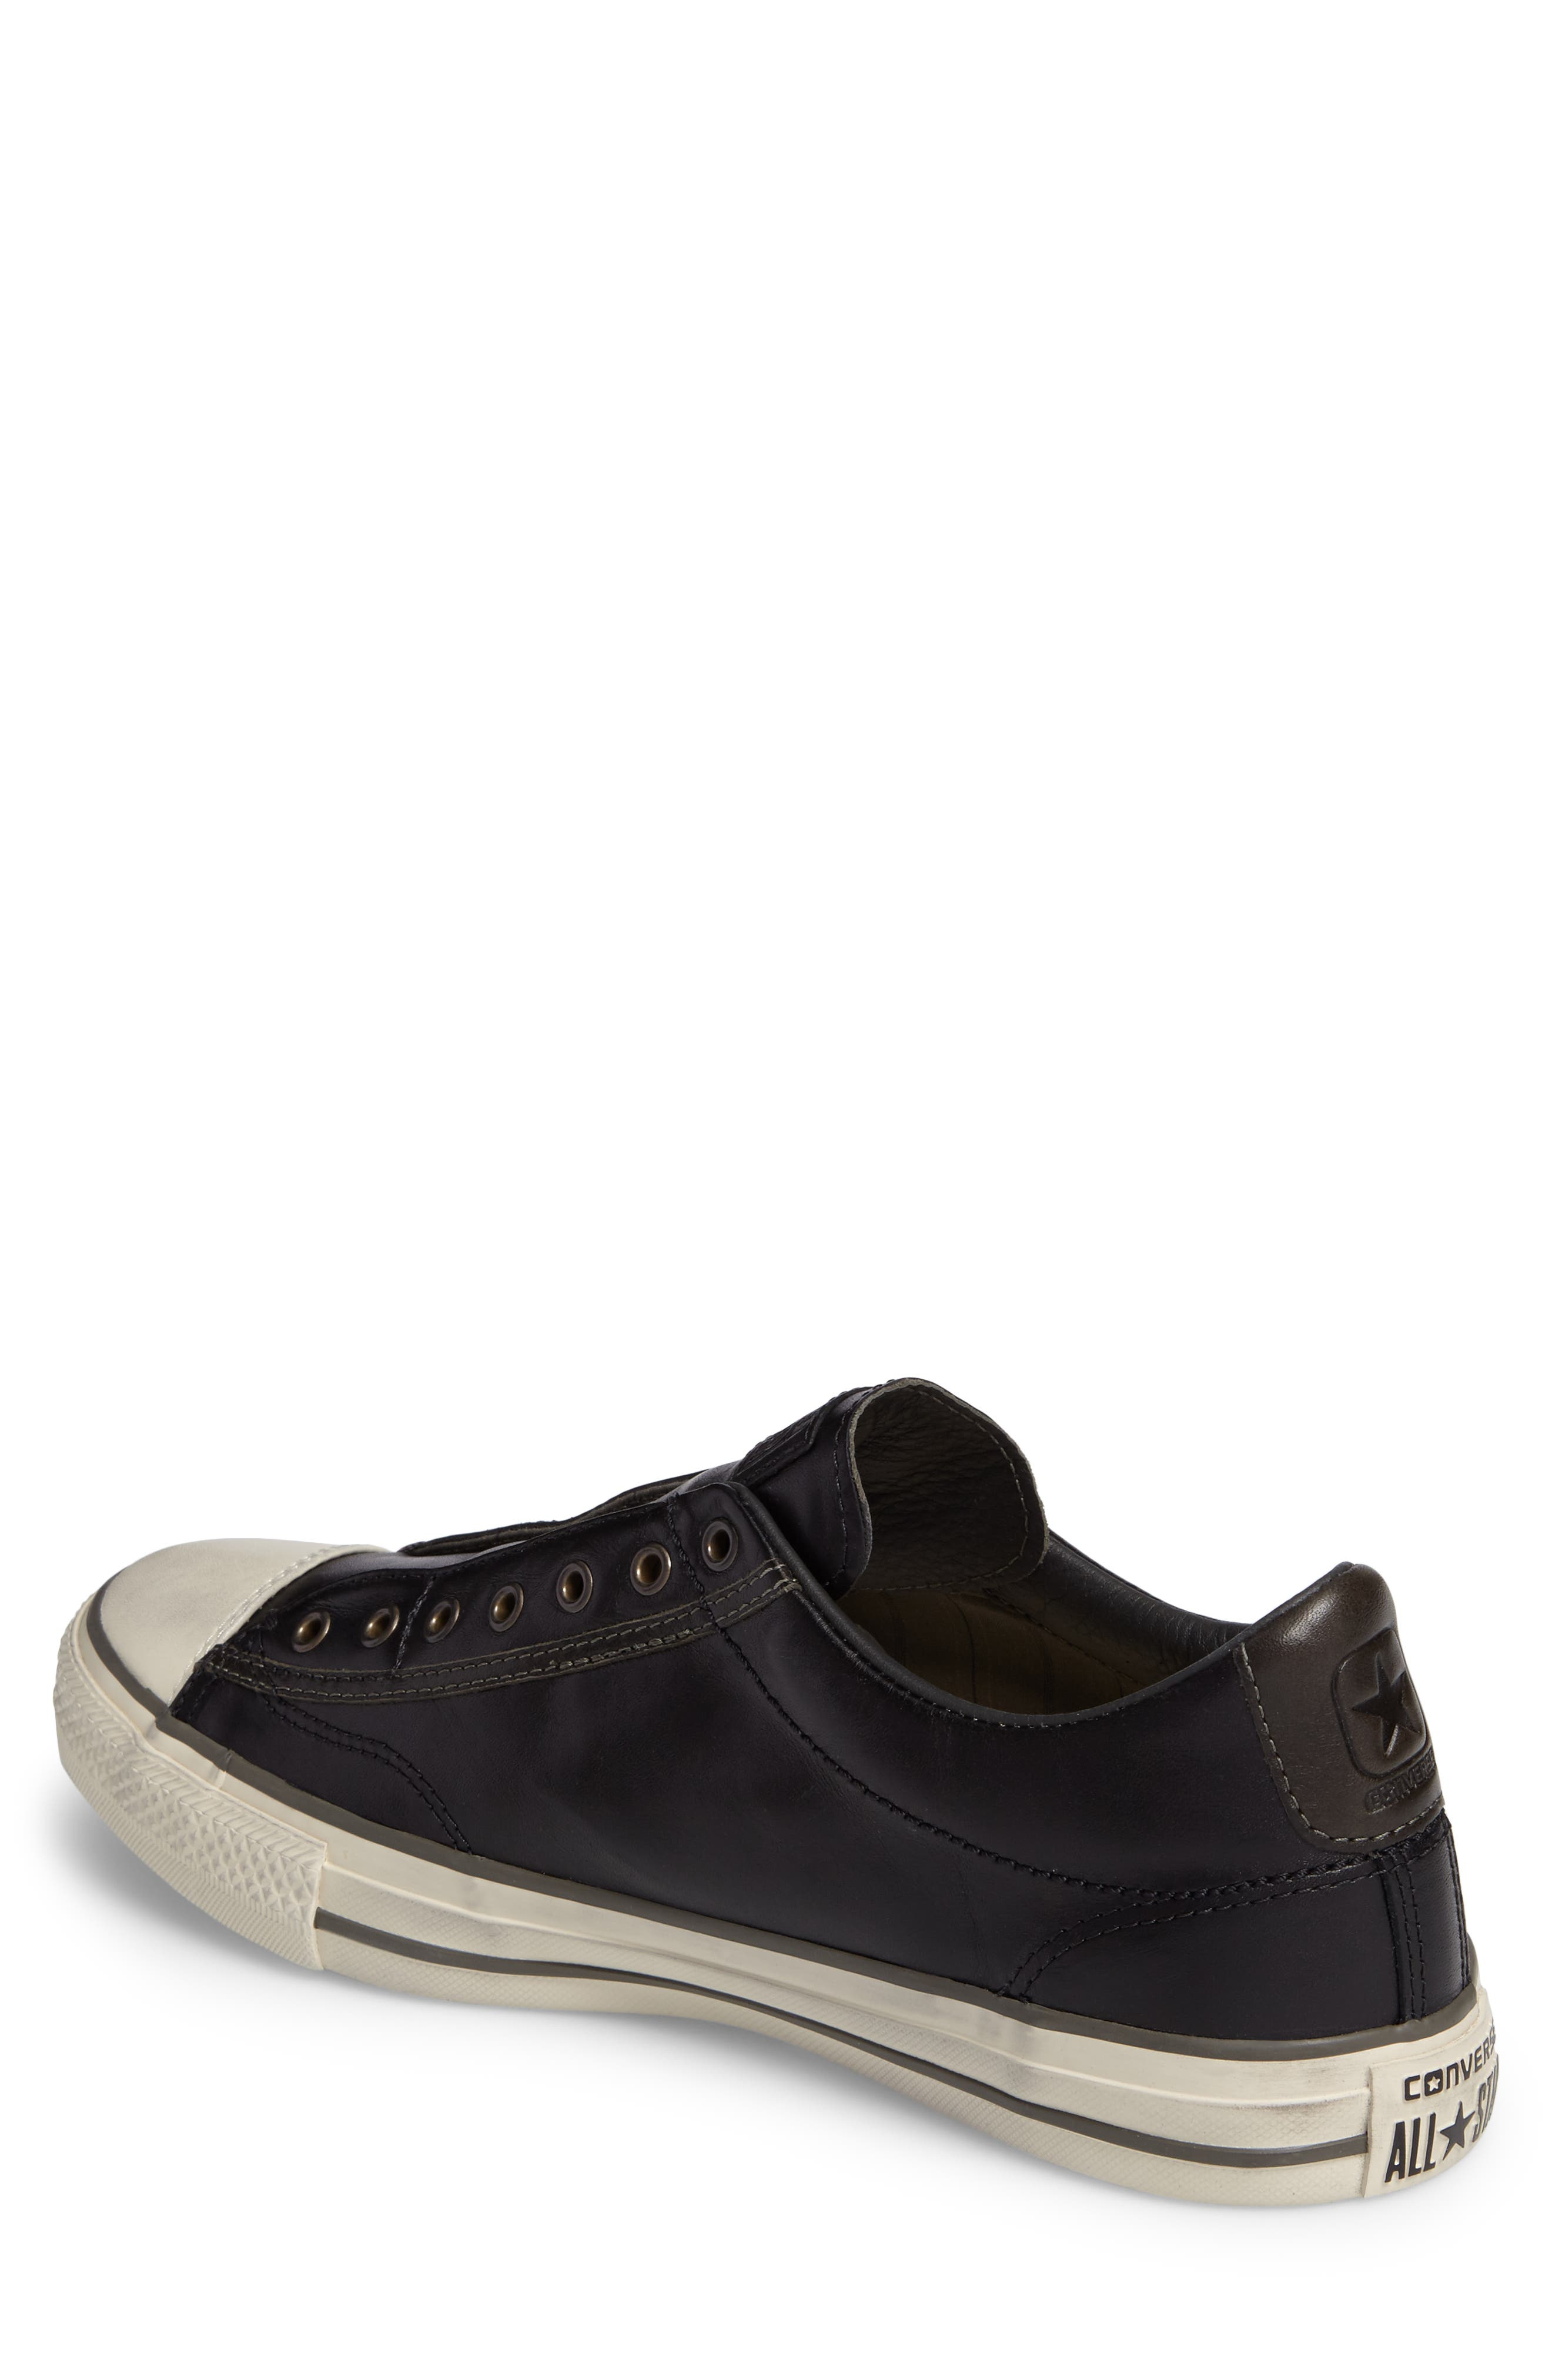 by John Varvatos Sneaker,                             Alternate thumbnail 2, color,                             001